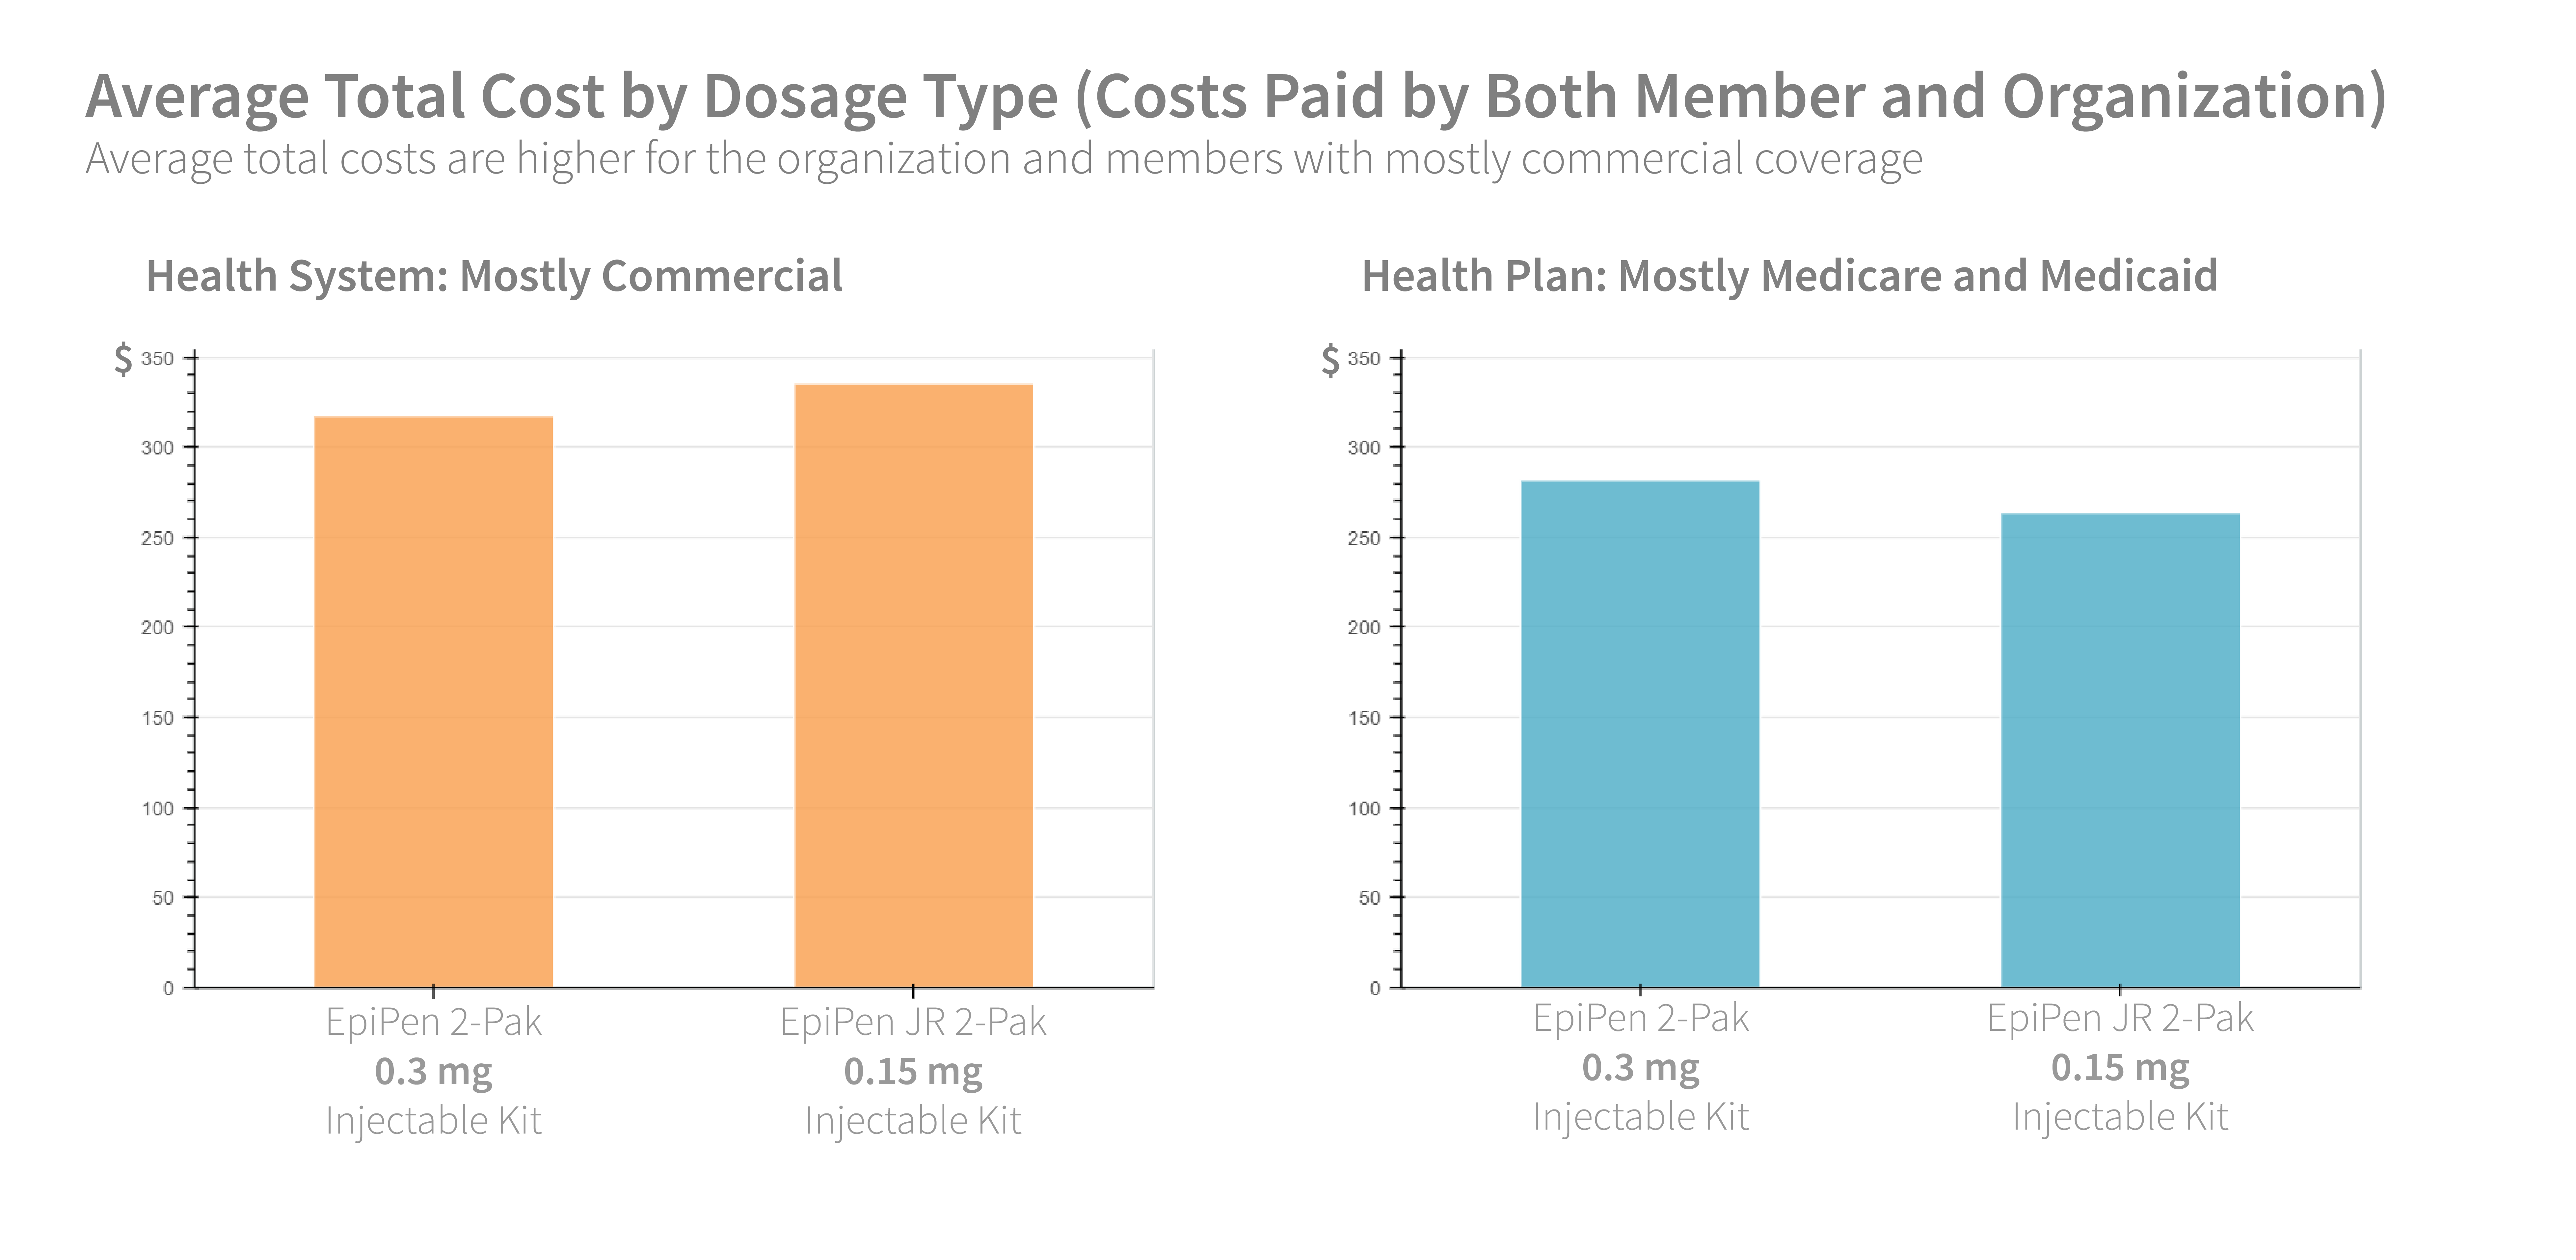 Average Total Cost by Dosage Type